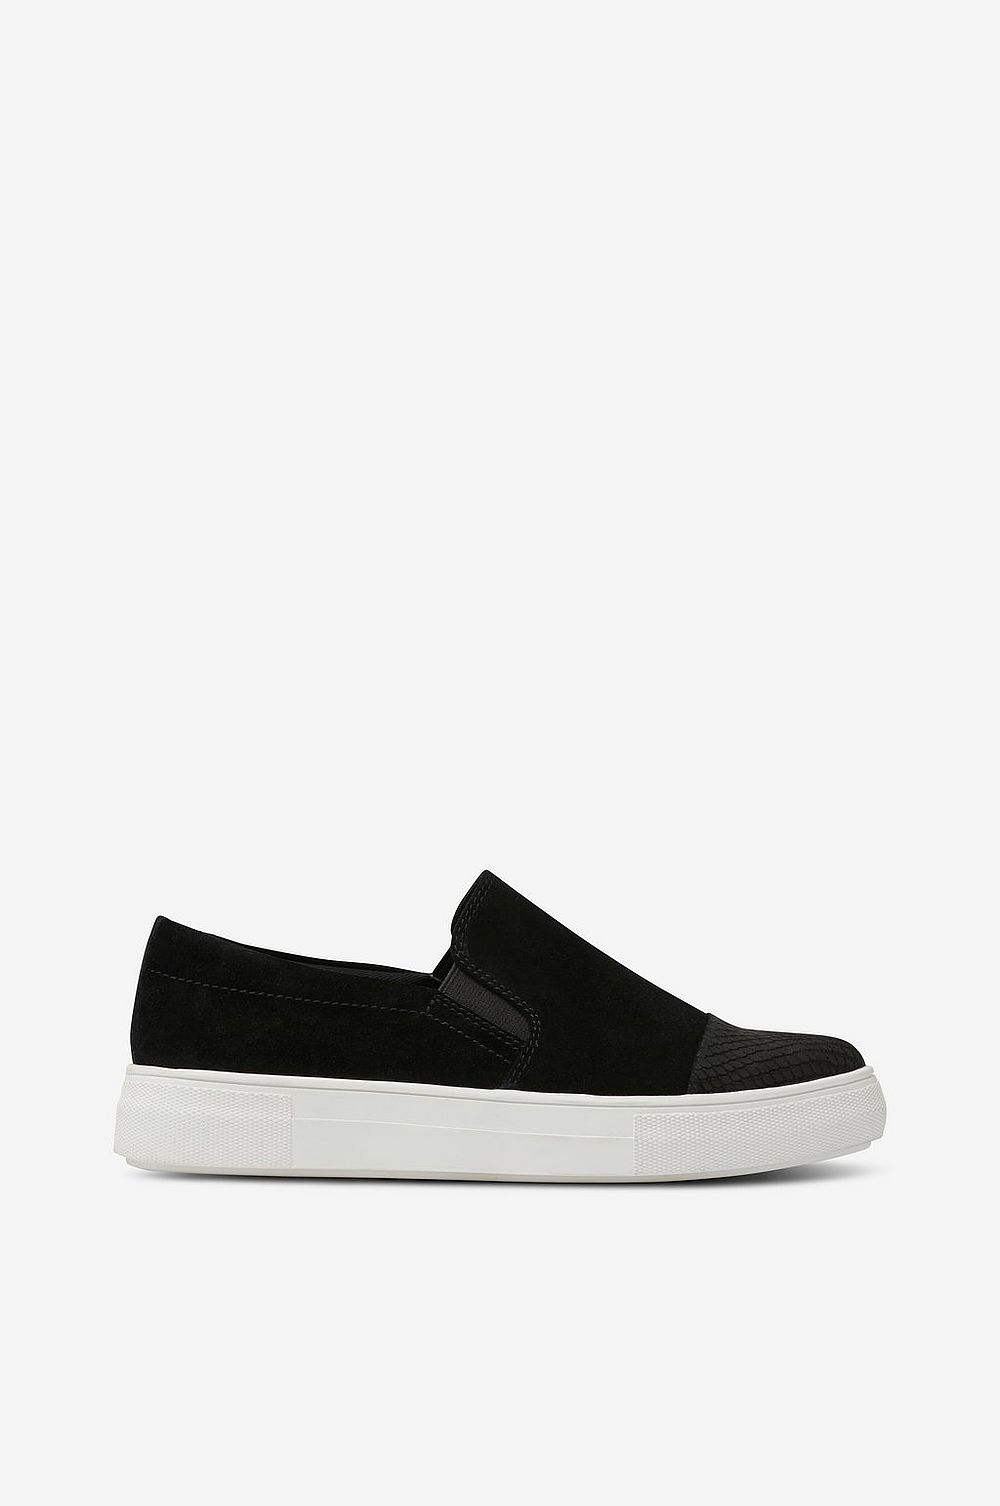 skor skor Slip On Shiny Toe Svart Dam